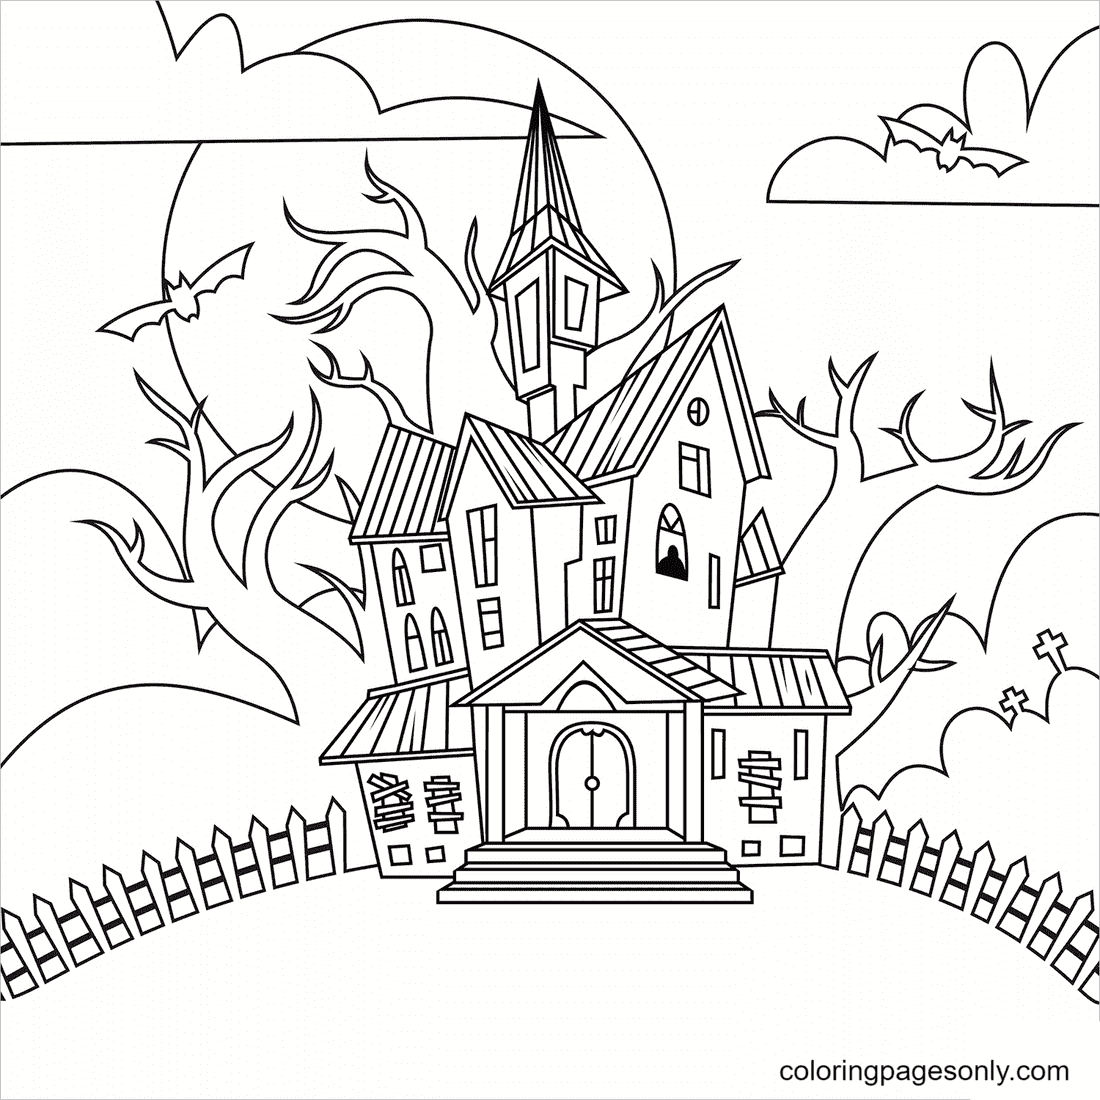 Spooky House with Ghosts Coloring Page